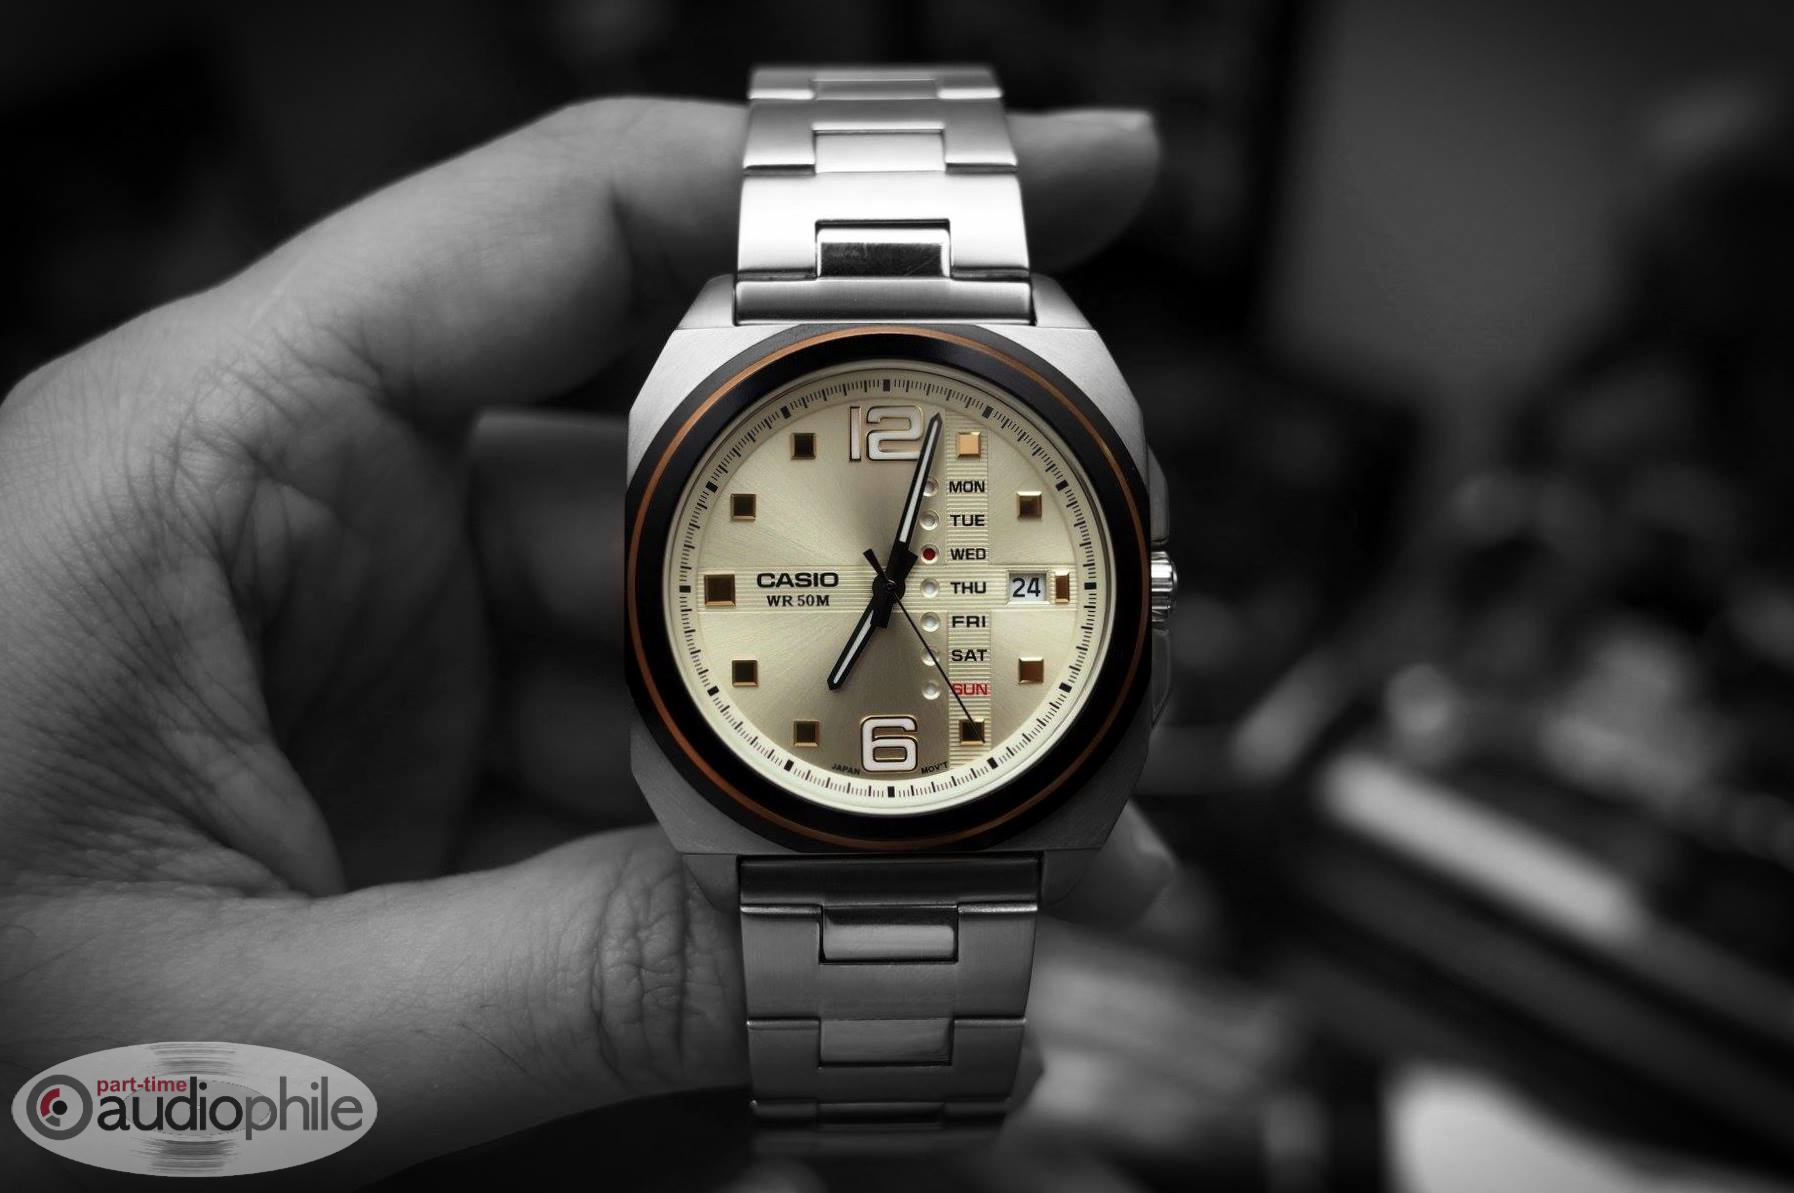 Why We Should Drop The Audiophile Label and Start Wearing Watches